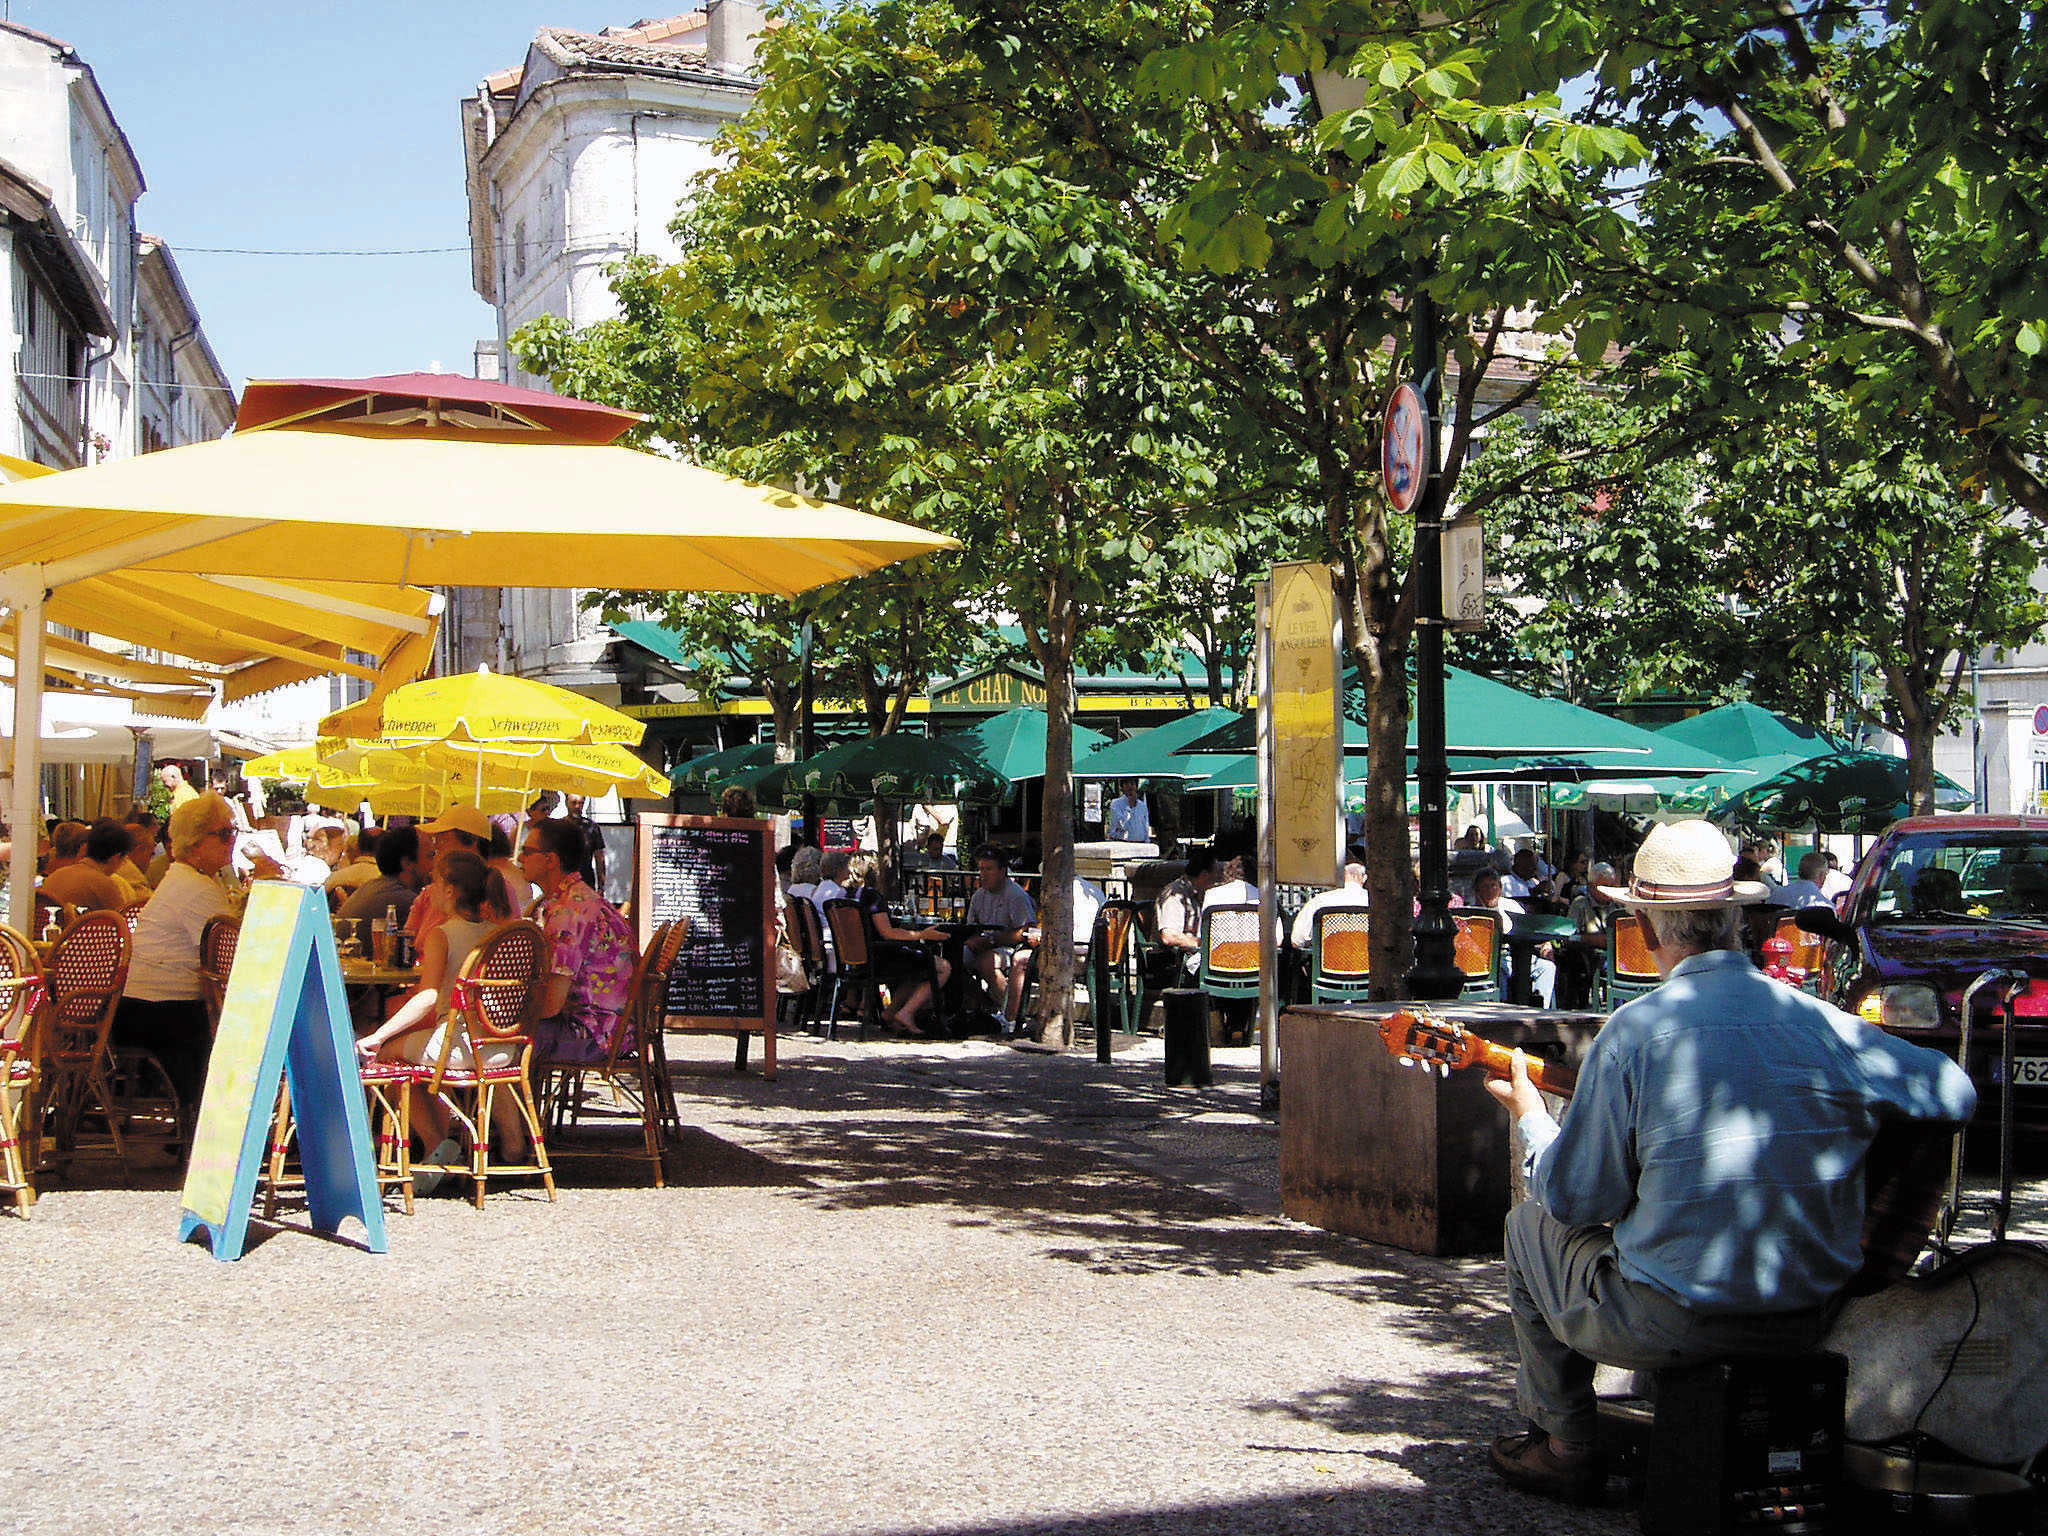 Visiter Angouleme Ses Environs #14: Le Blog Mobilboard